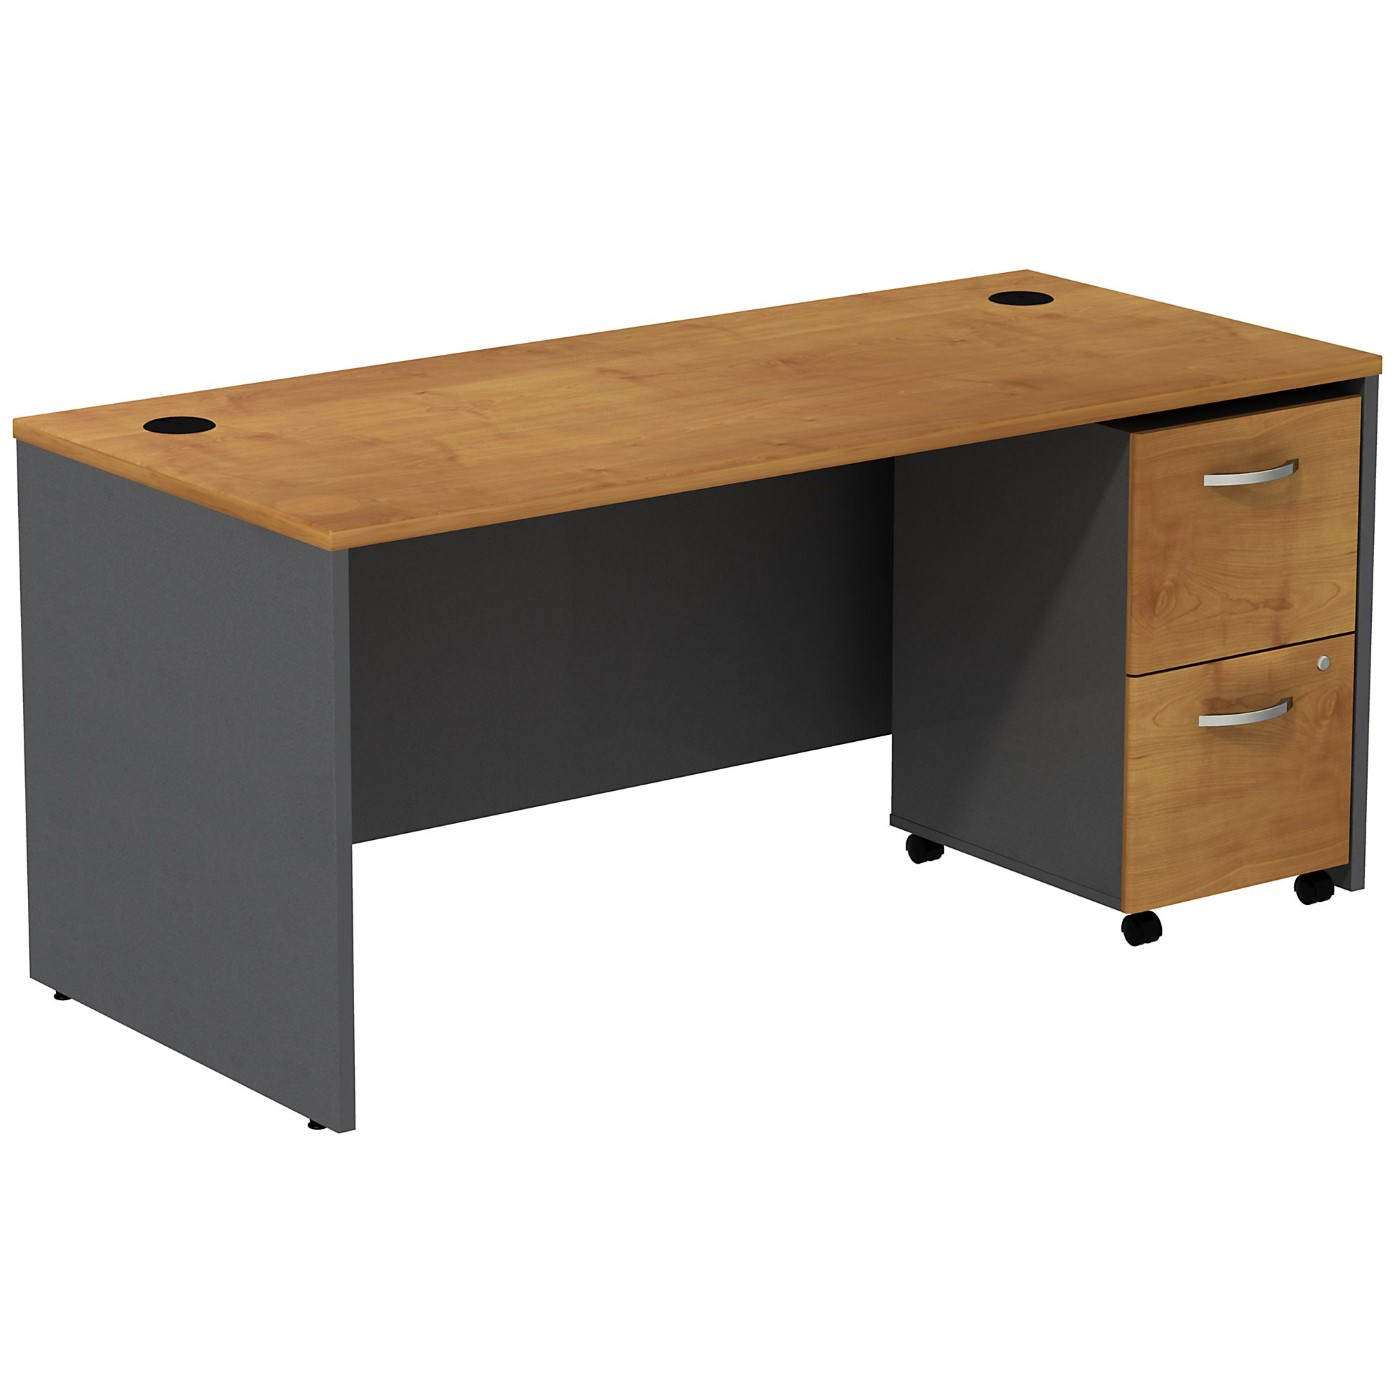 BUSH BUSINESS FURNITURE SERIES C DESK WITH 2 DRAWER MOBILE PEDESTAL. FREE SHIPPING